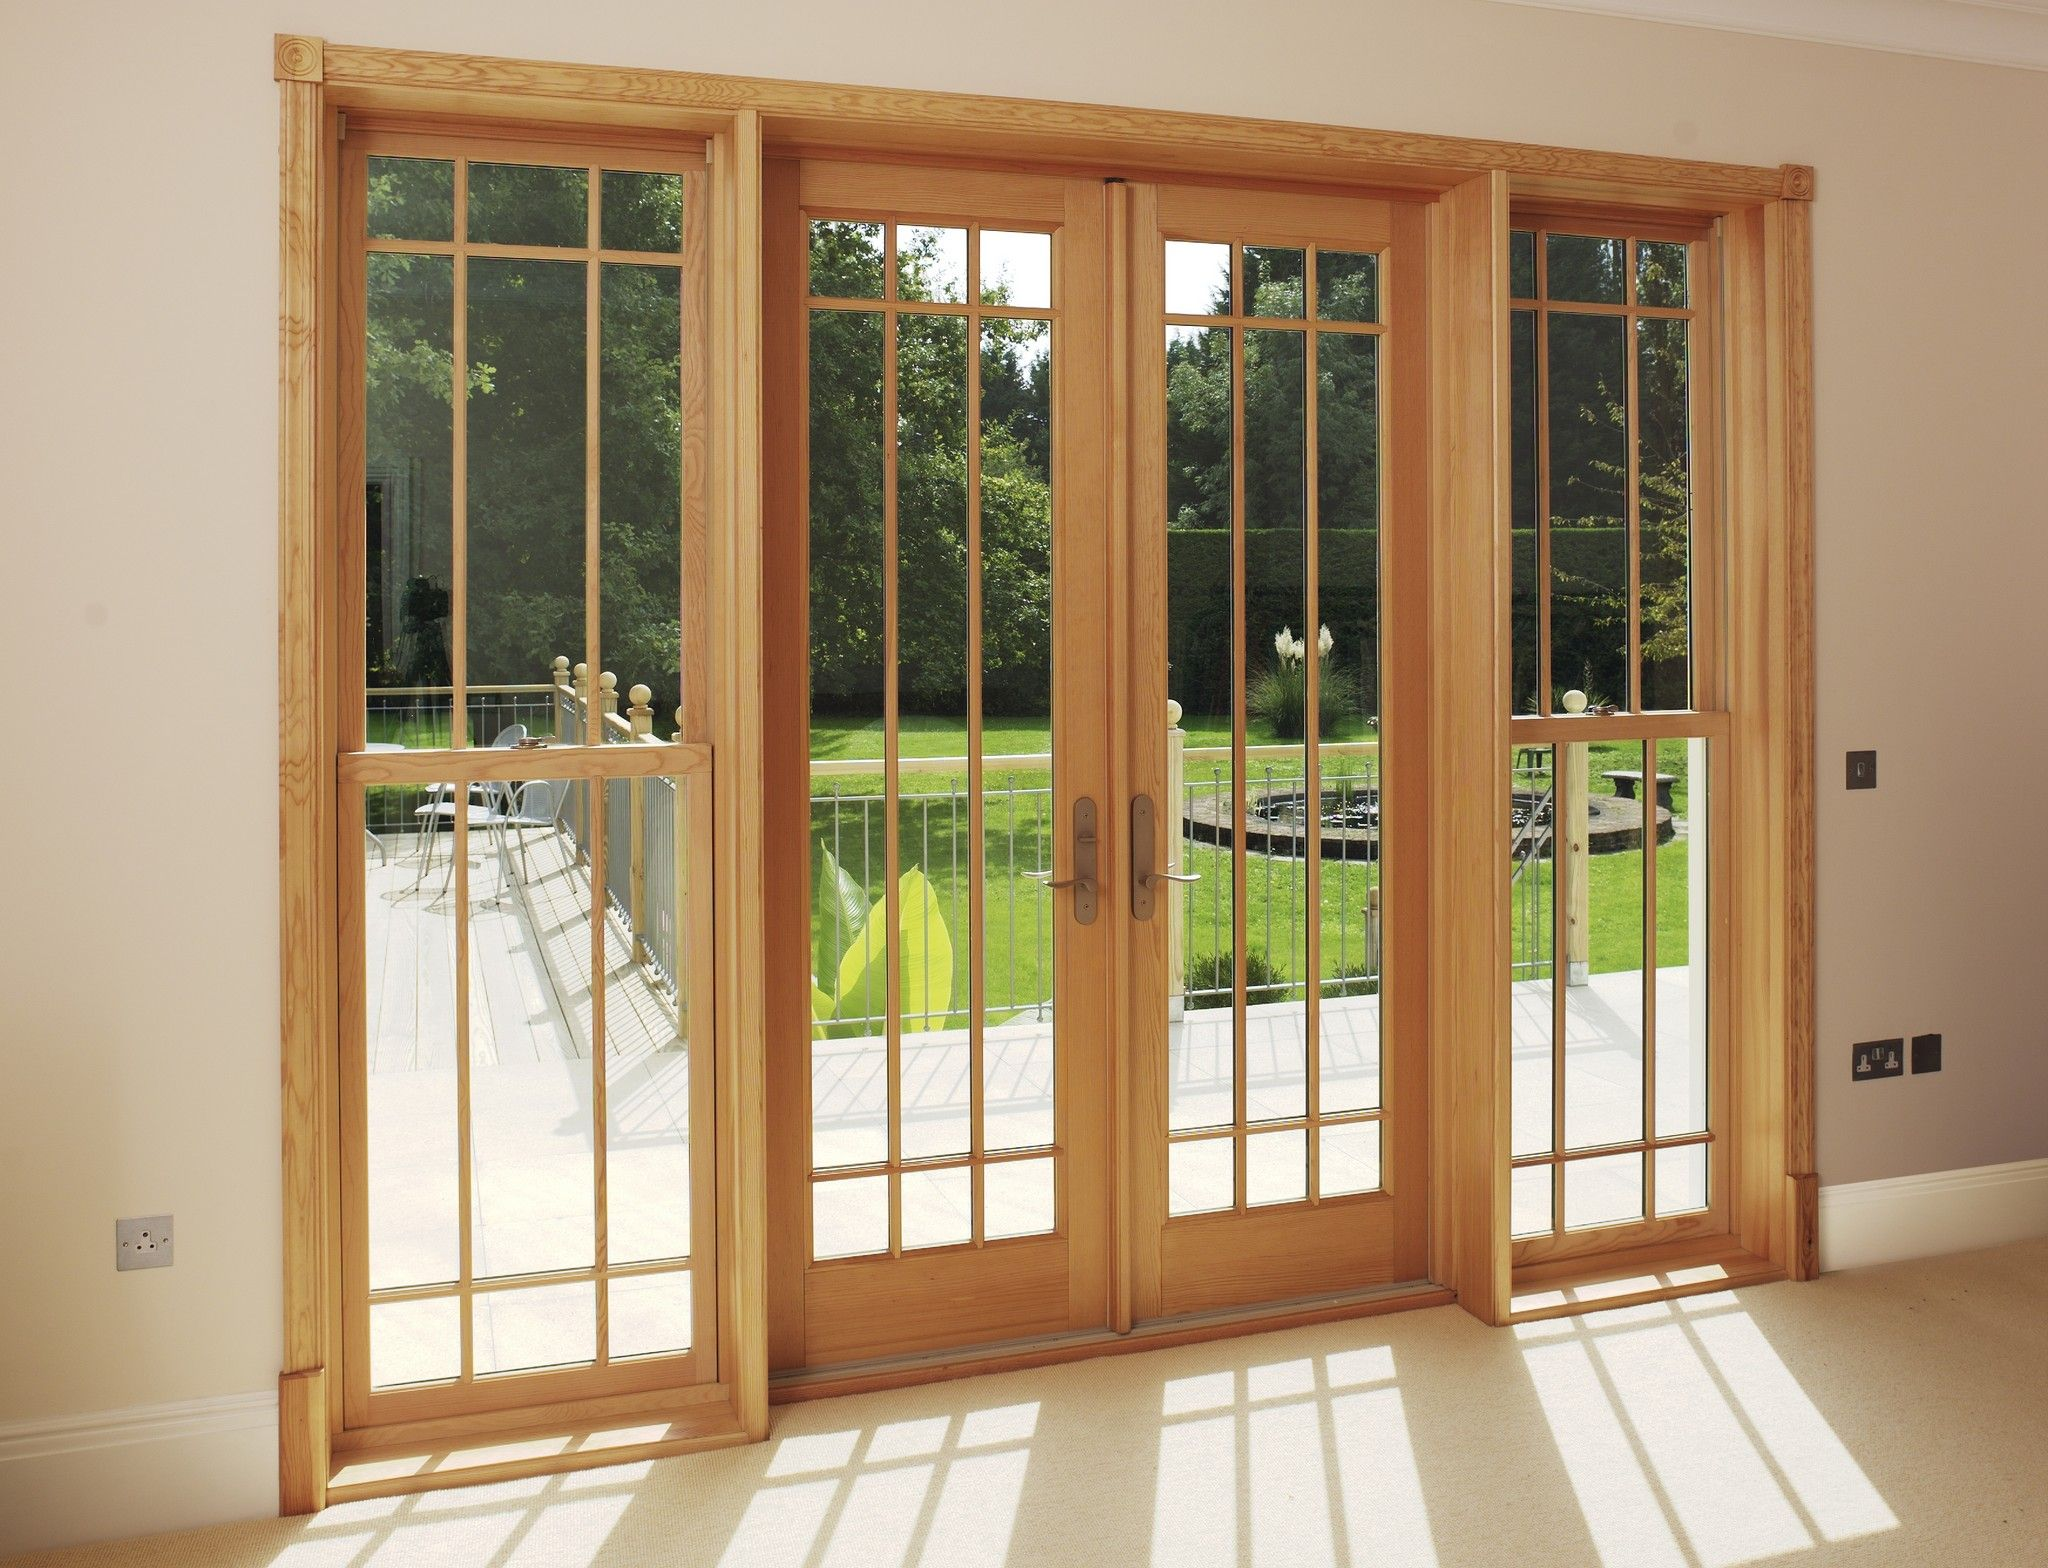 Marvin\'s Ultimate Timber French Doors Are Built To Complement Any ...